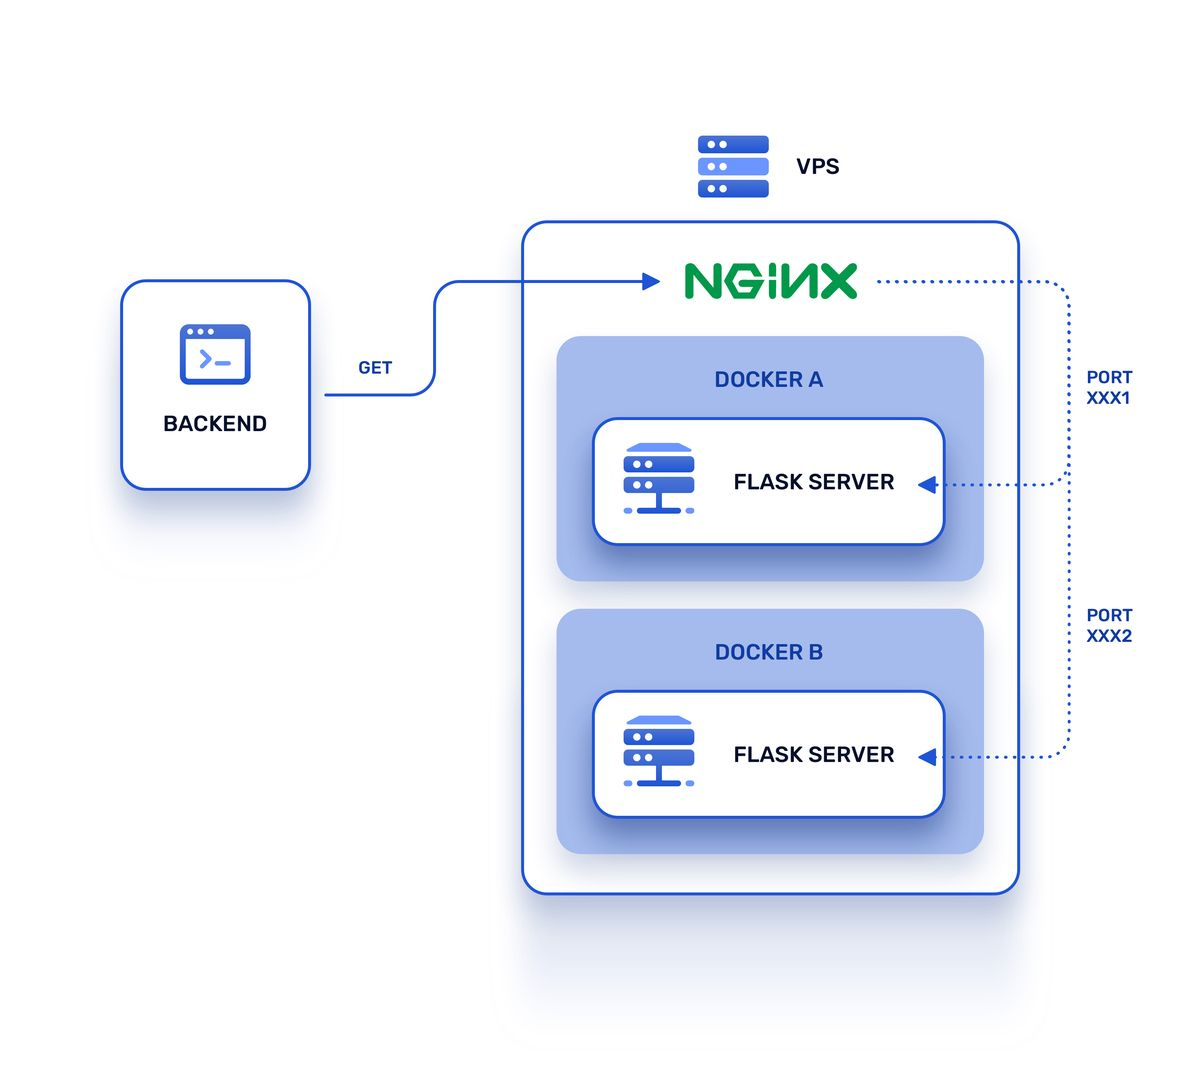 Second version of the architecture with Nginx as reverse proxy